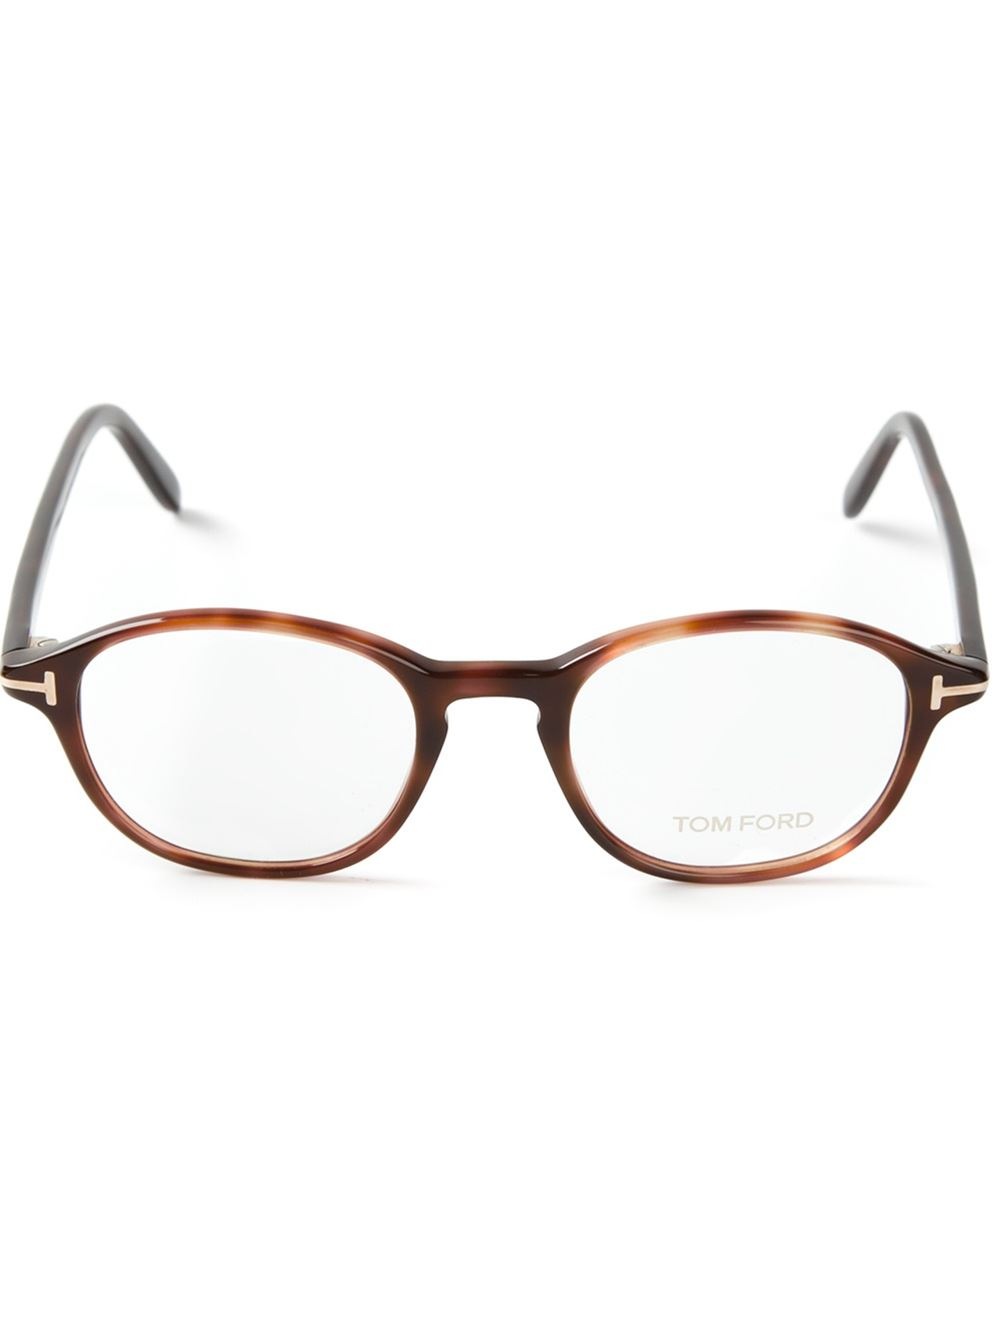 1a9047a2cab Lyst - Tom Ford Tortoise Shell Glasses in Brown